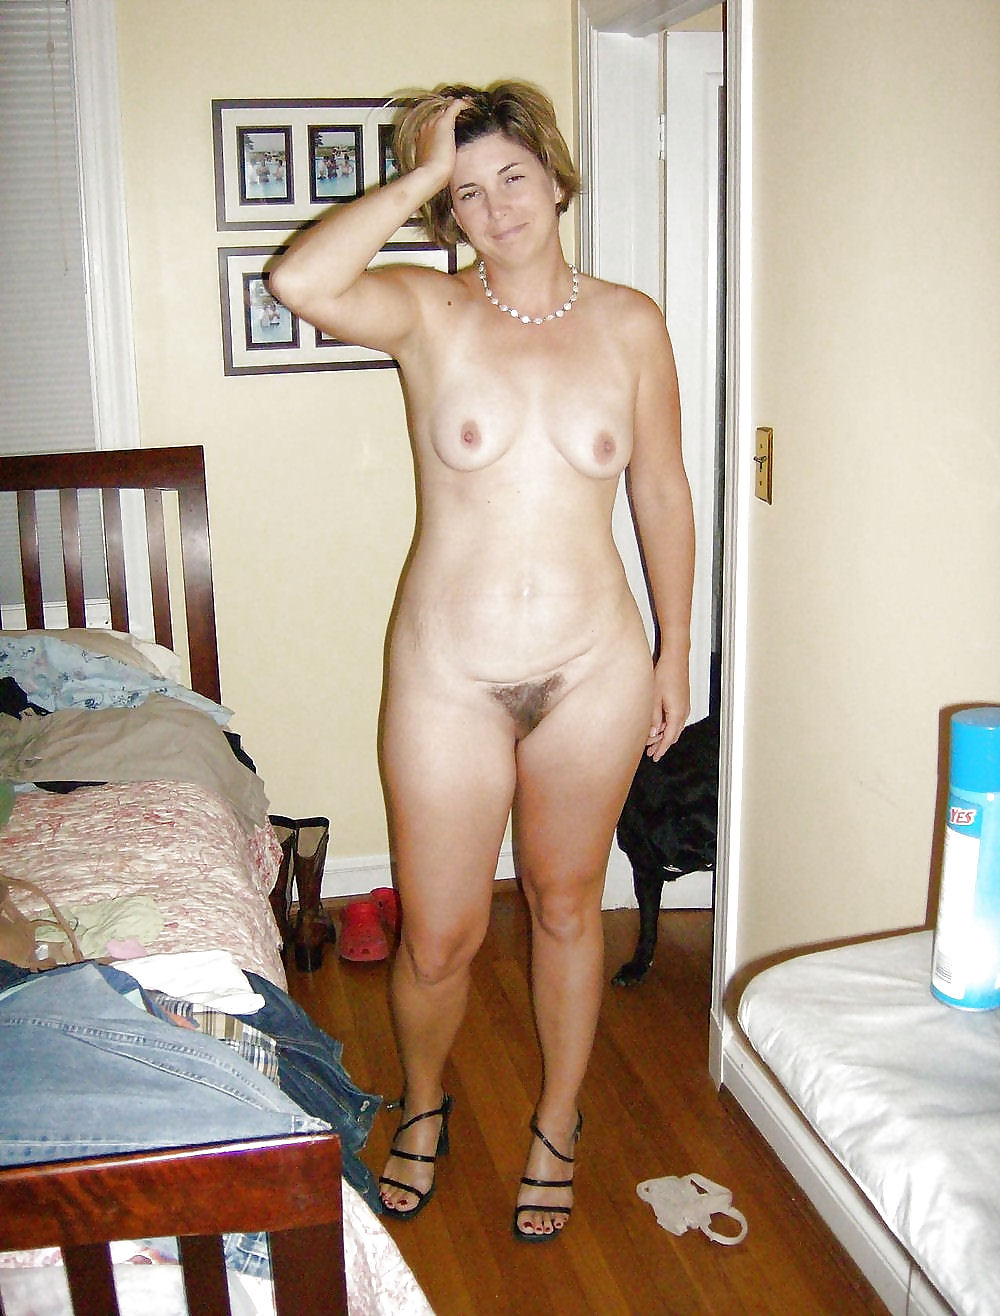 immature-nude-photos